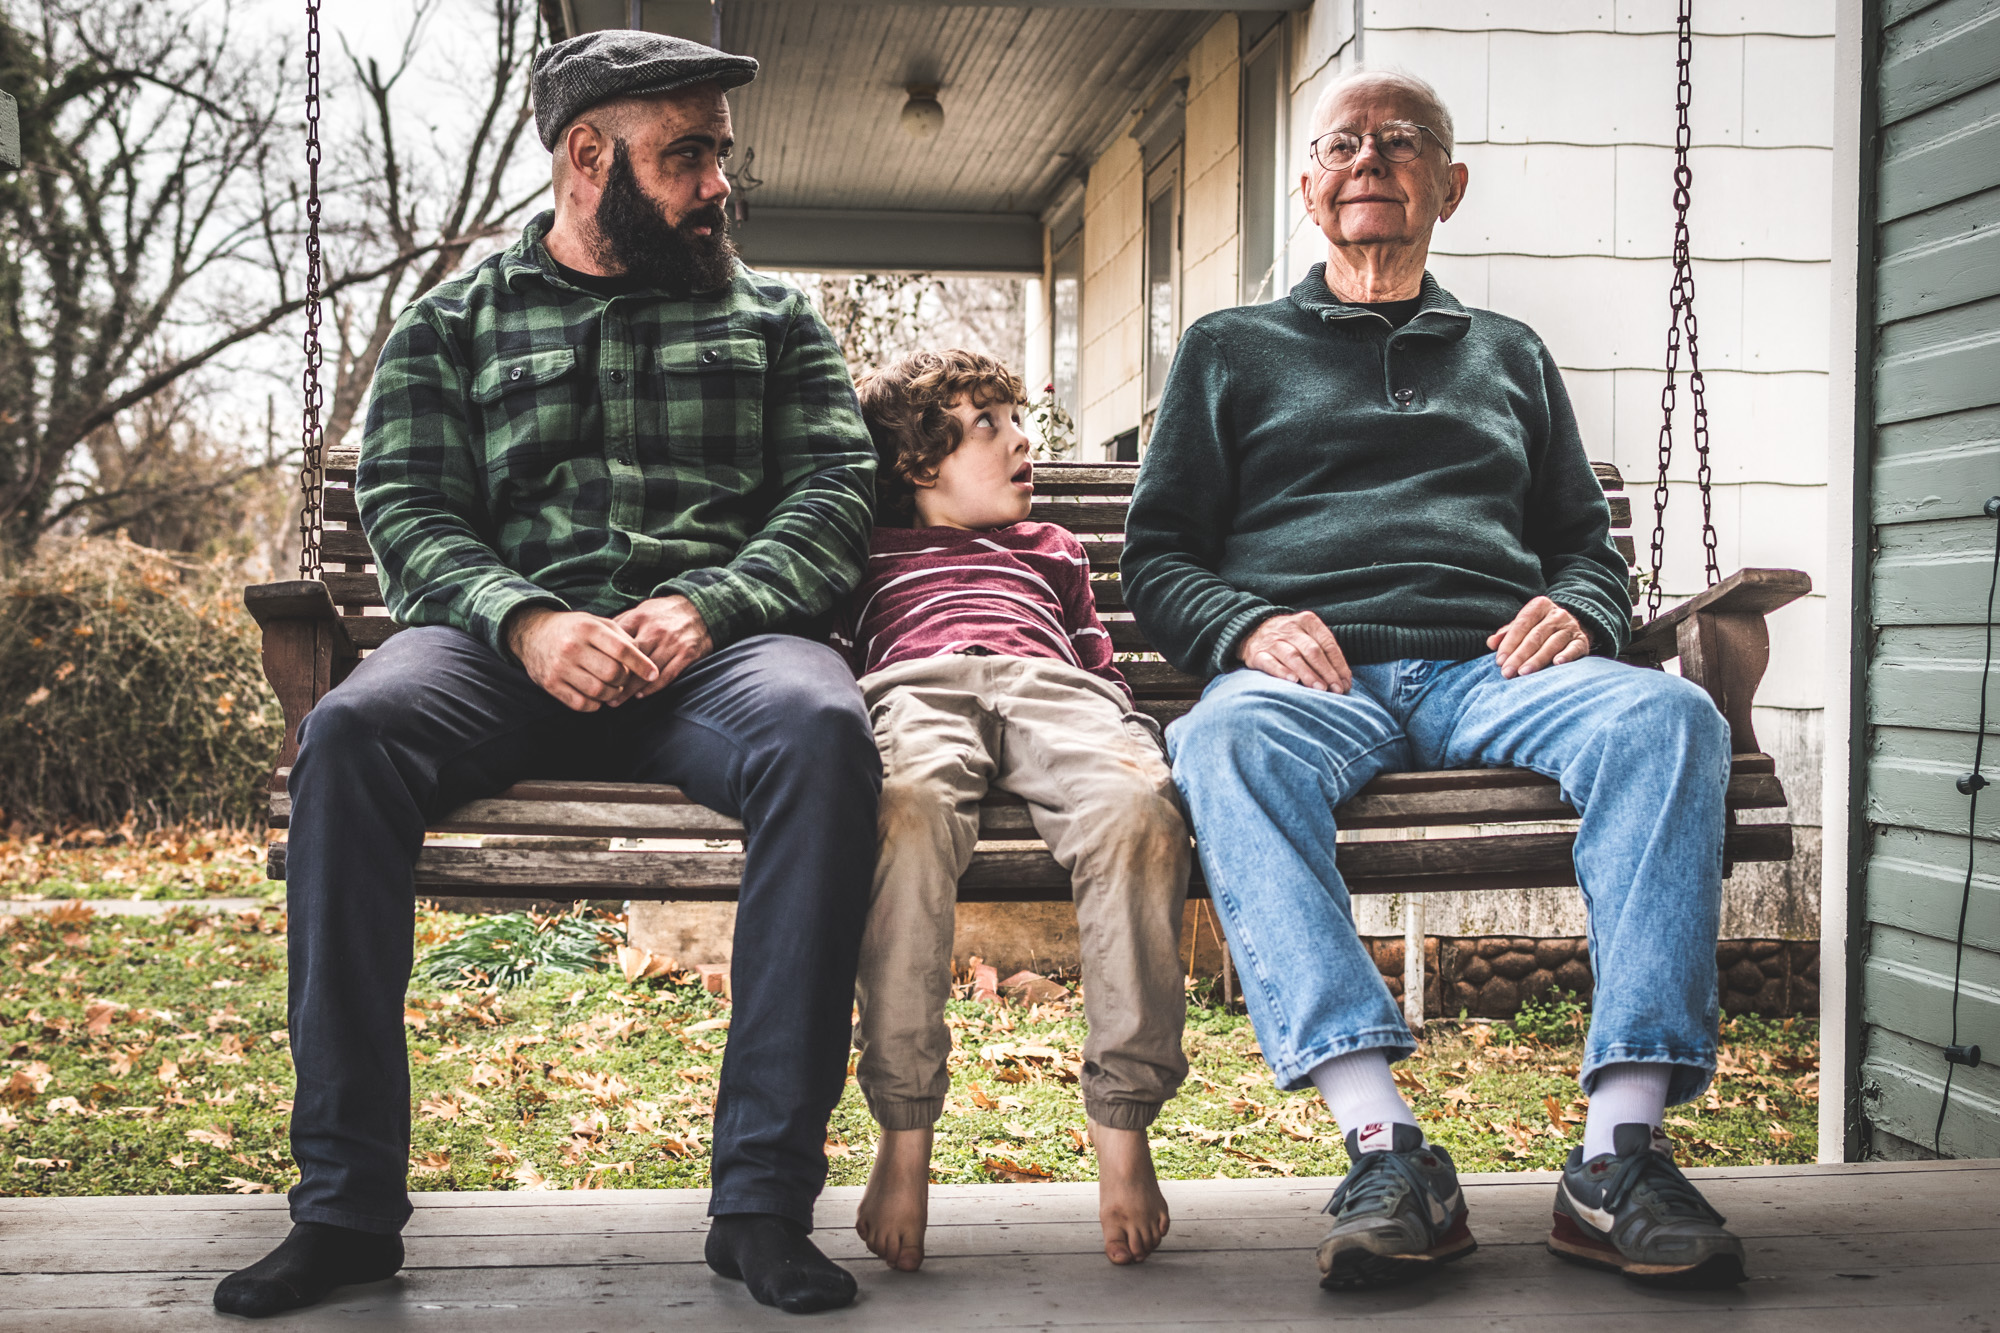 Color photo of three generations of men sitting on a front porch swing, the youngest boy of 7 years in the middle, covered in dirt, a middle aged man to his left wearing plaid and a hat, and the grandfather/great-grandfather to the right, wearing warm, comfortable clothes and staring off into the distance